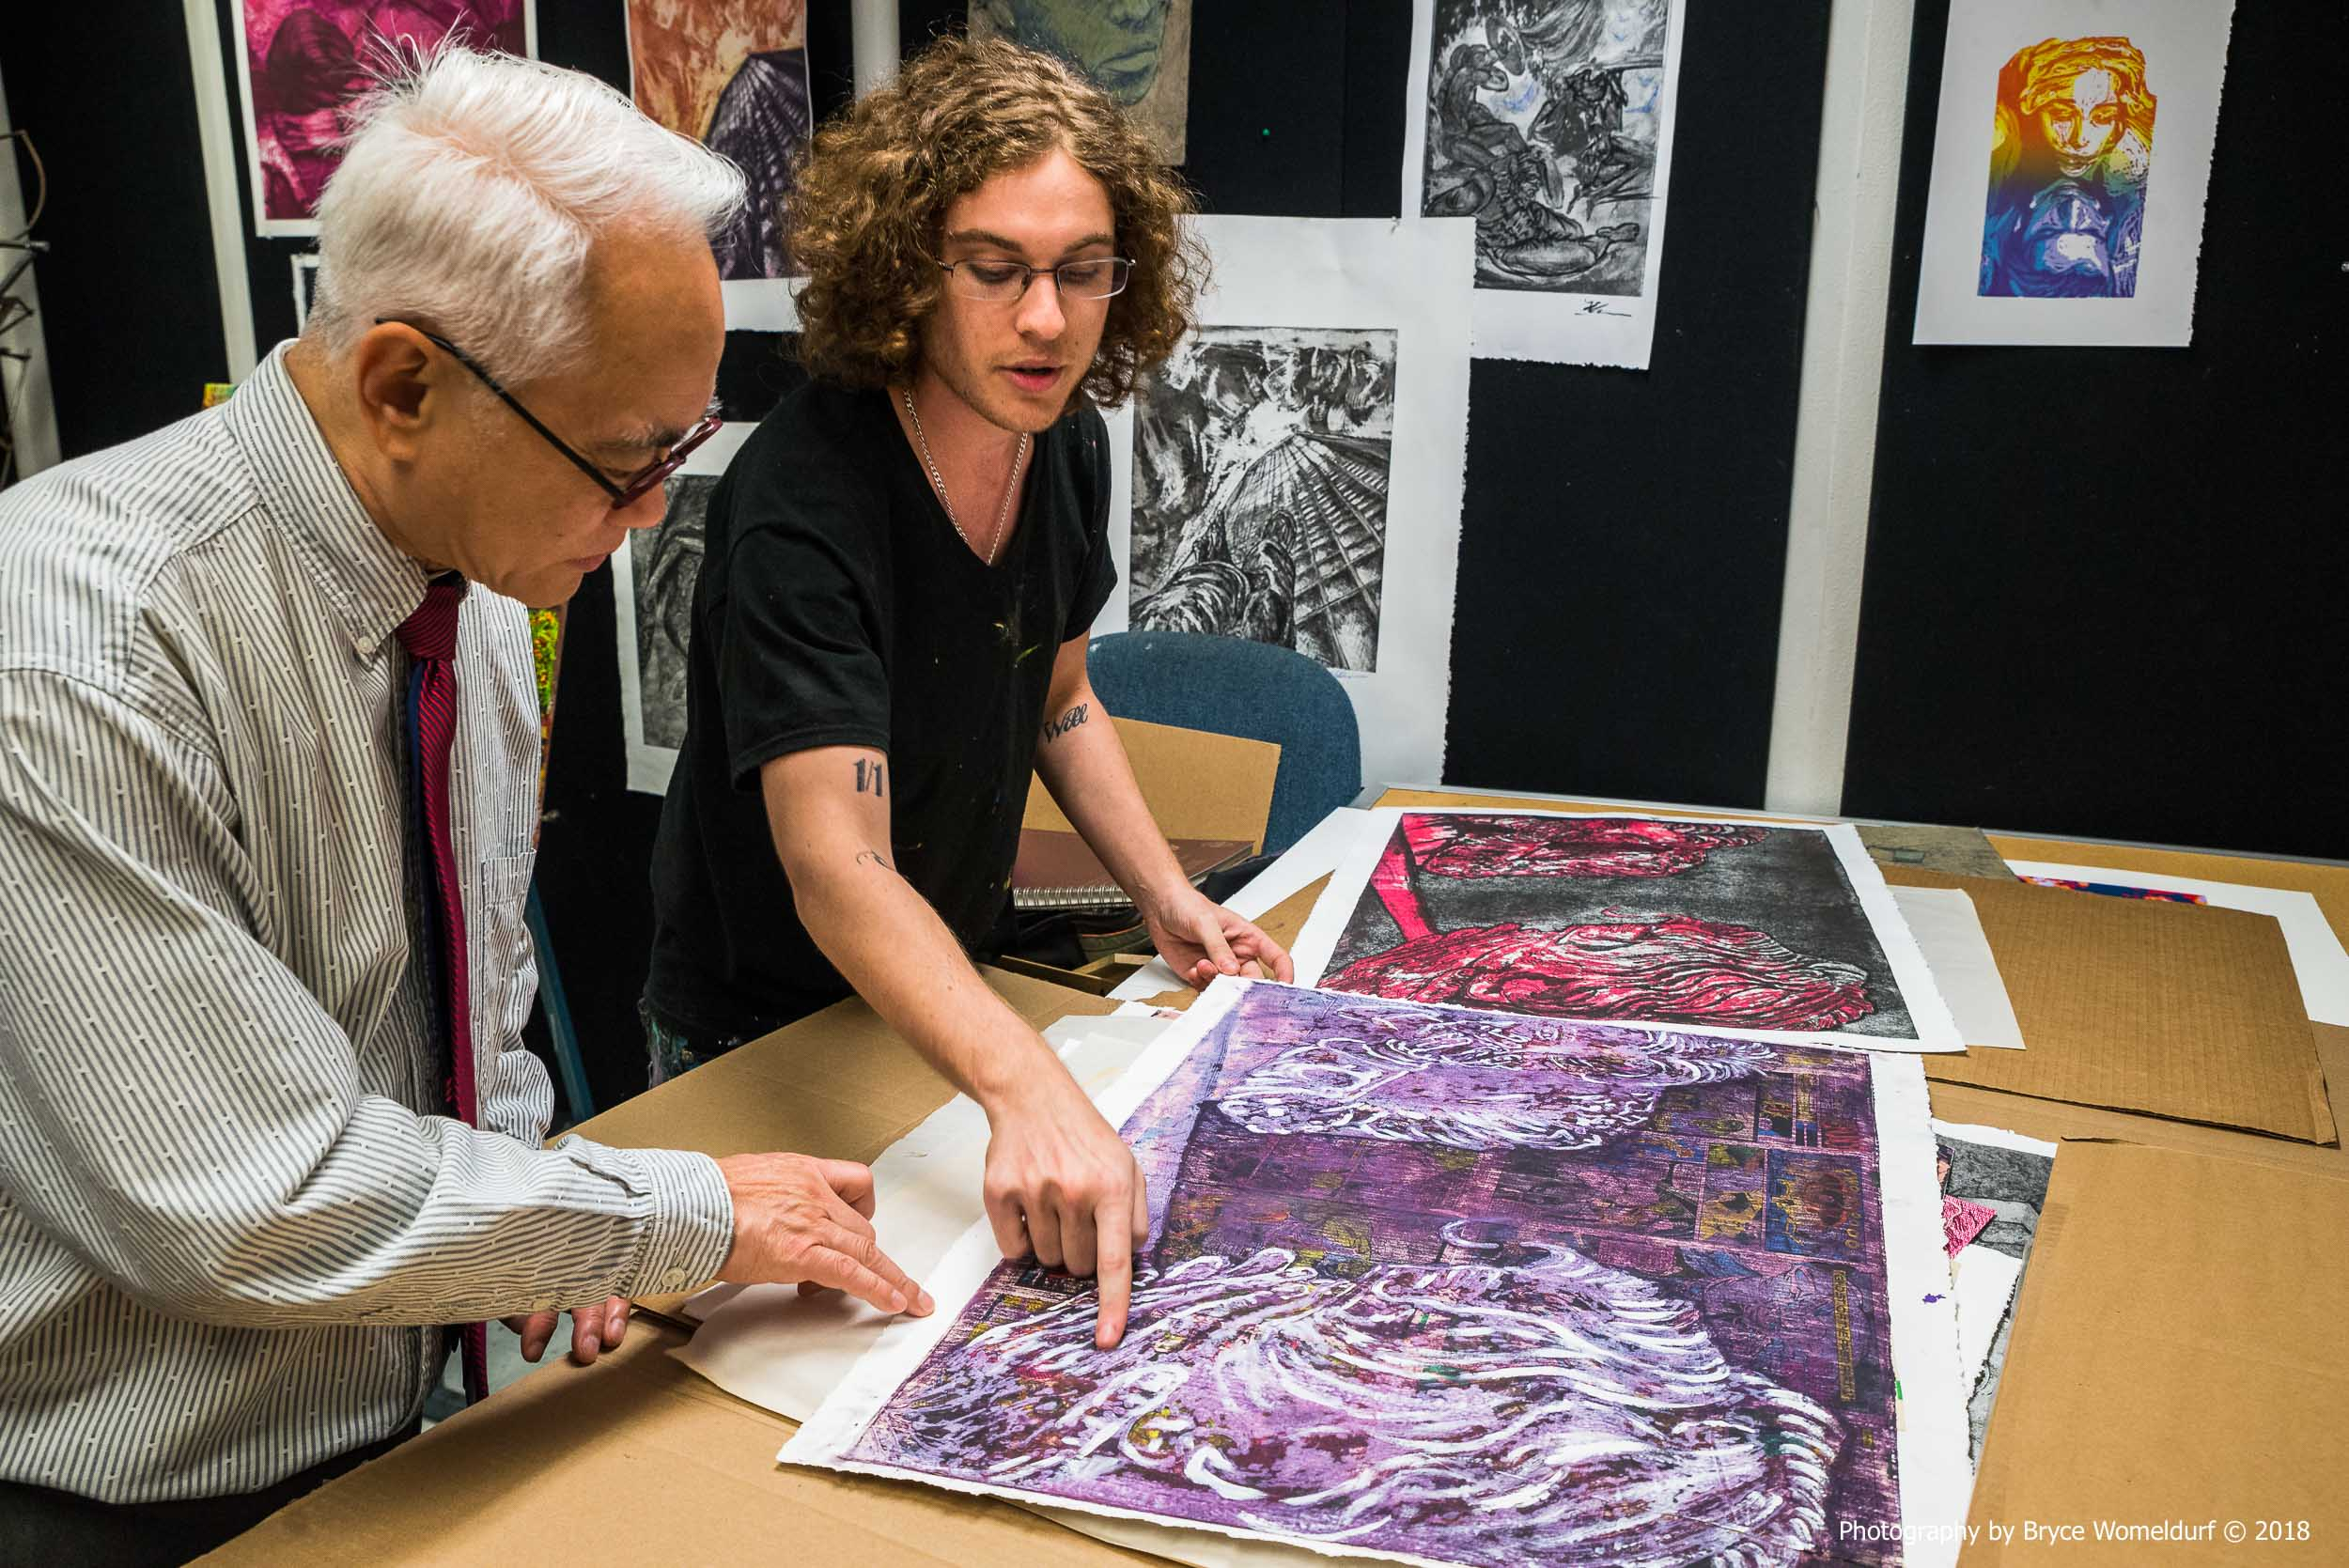 Artist Logan Bryce Holeve showing Dean James Moy his print work